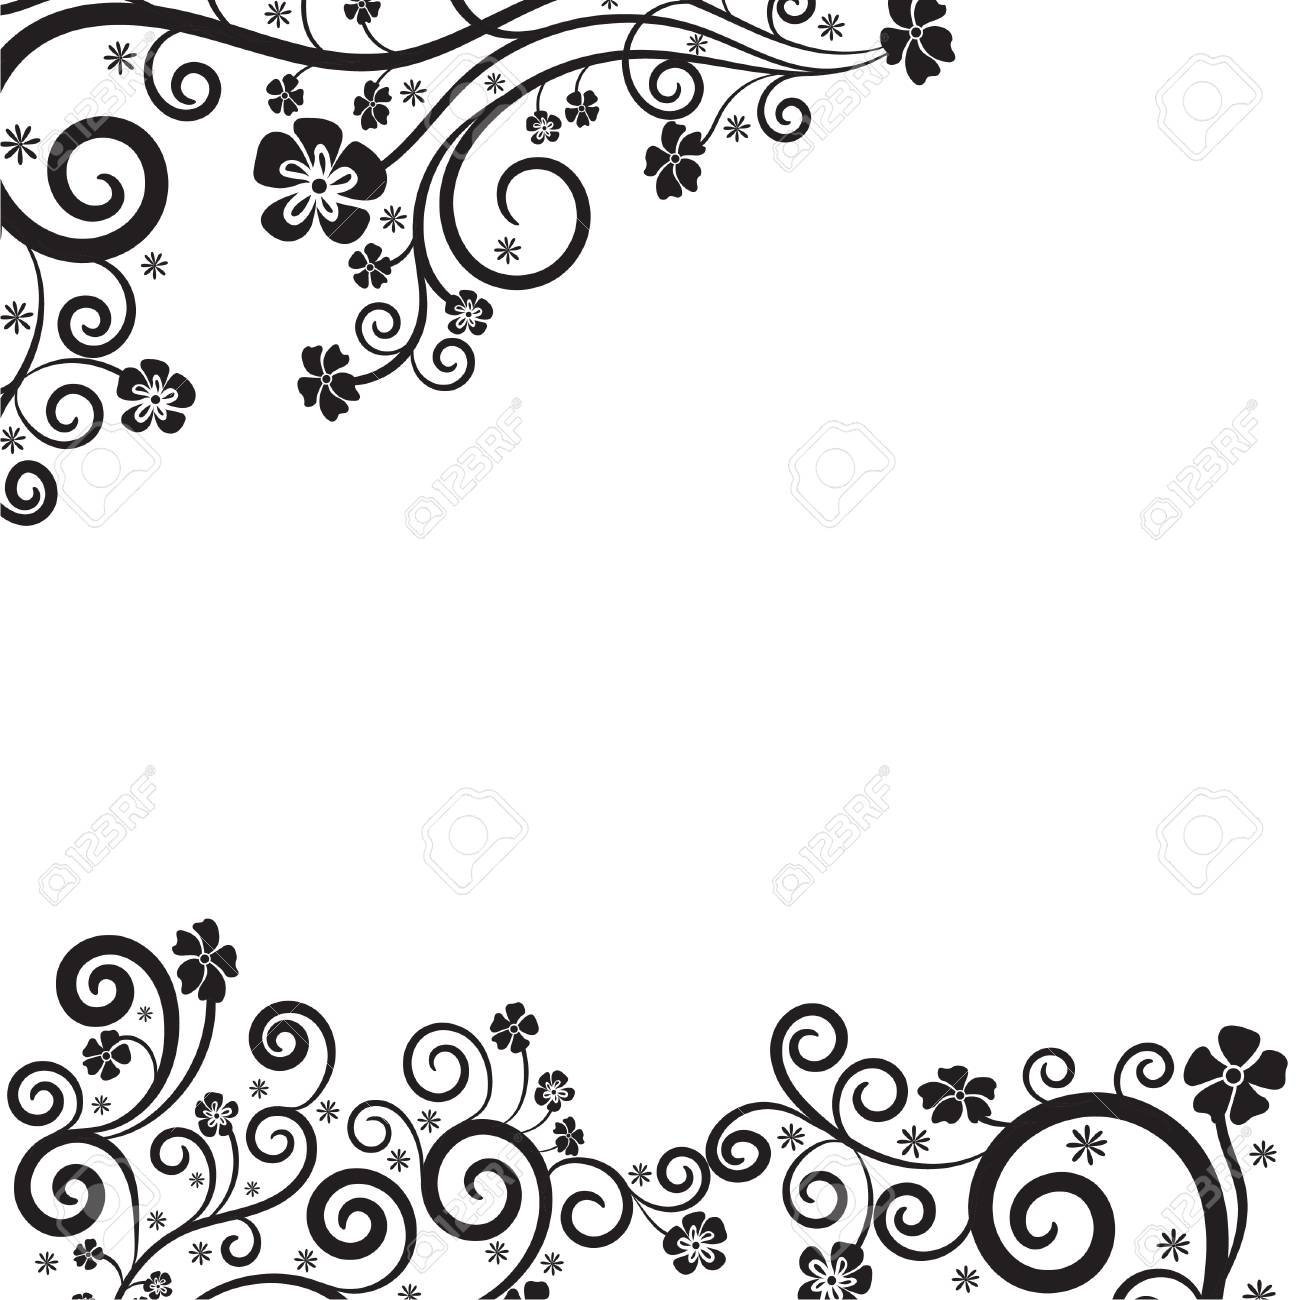 Vintage Floral Decorative Background With Calligraphic Swirls ...